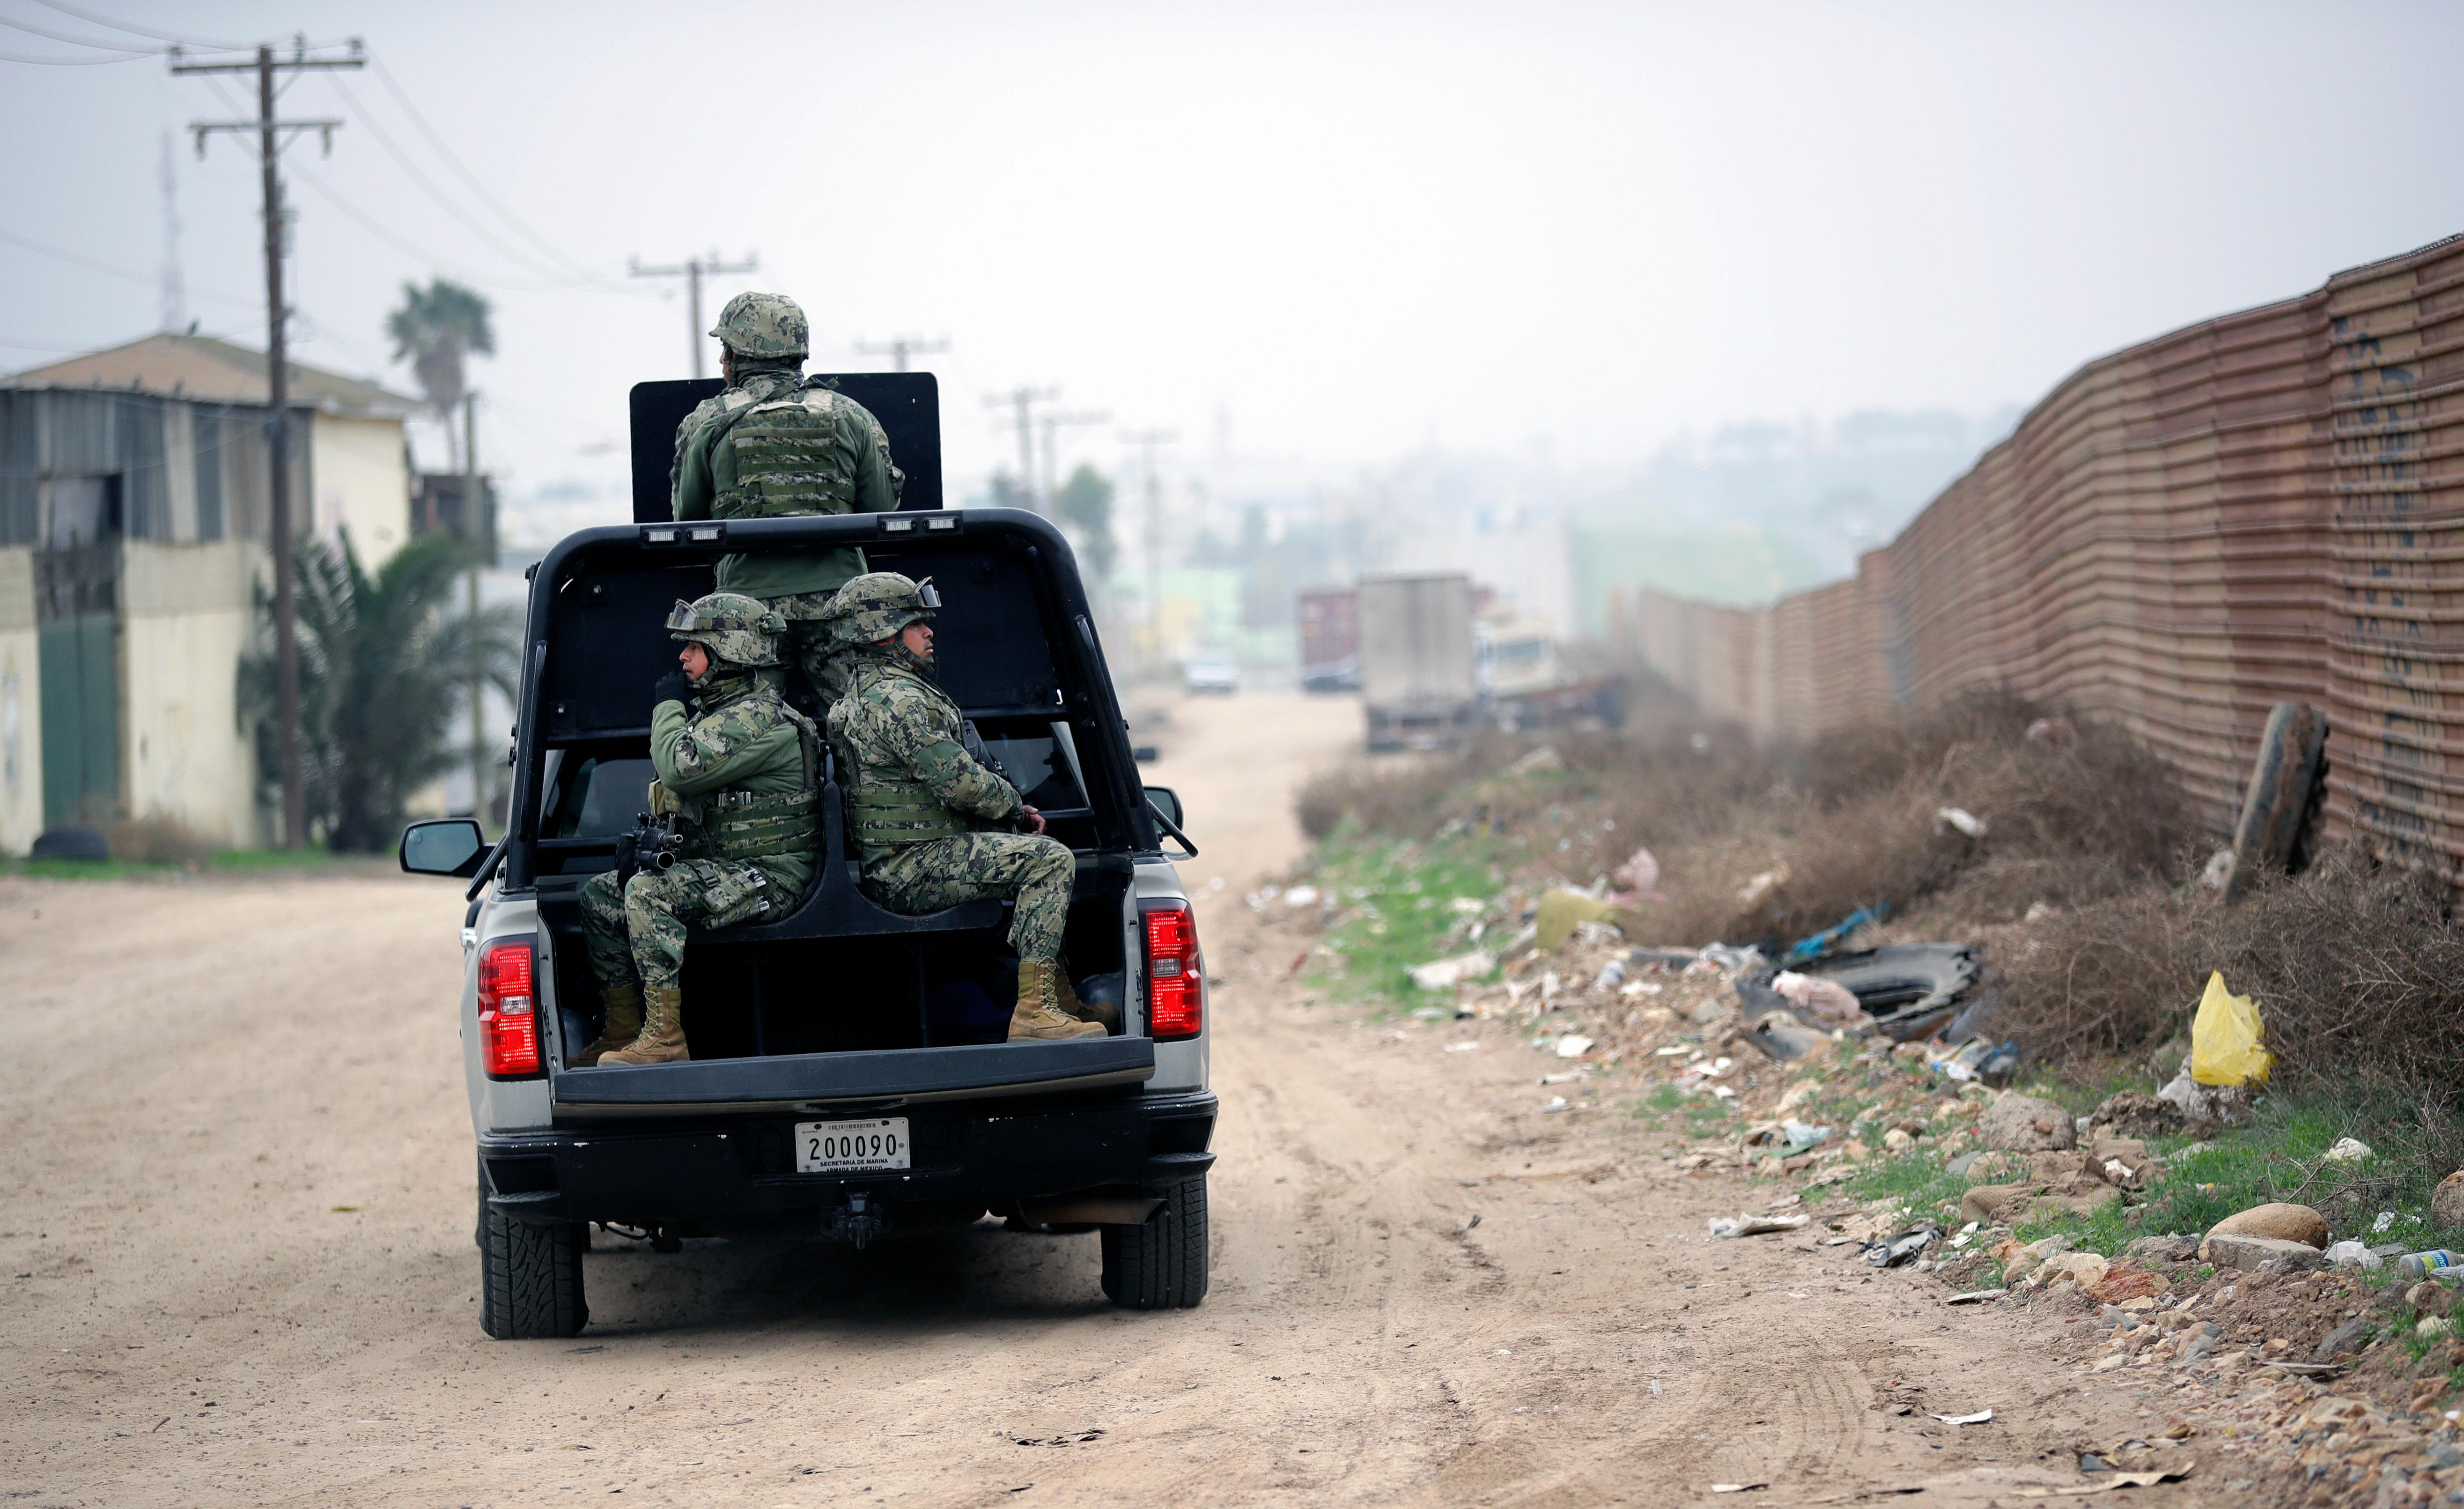 Mexican Navy officers patrol on the Mexico side of the border on Tuesday, March 13, 2018, in Tijuana, Mexico. President Trump is scheduled to visit the site of the border wall prototypes which are on the U.S. side of the wall seen on the right. (AP Photo/Gregory Bull)